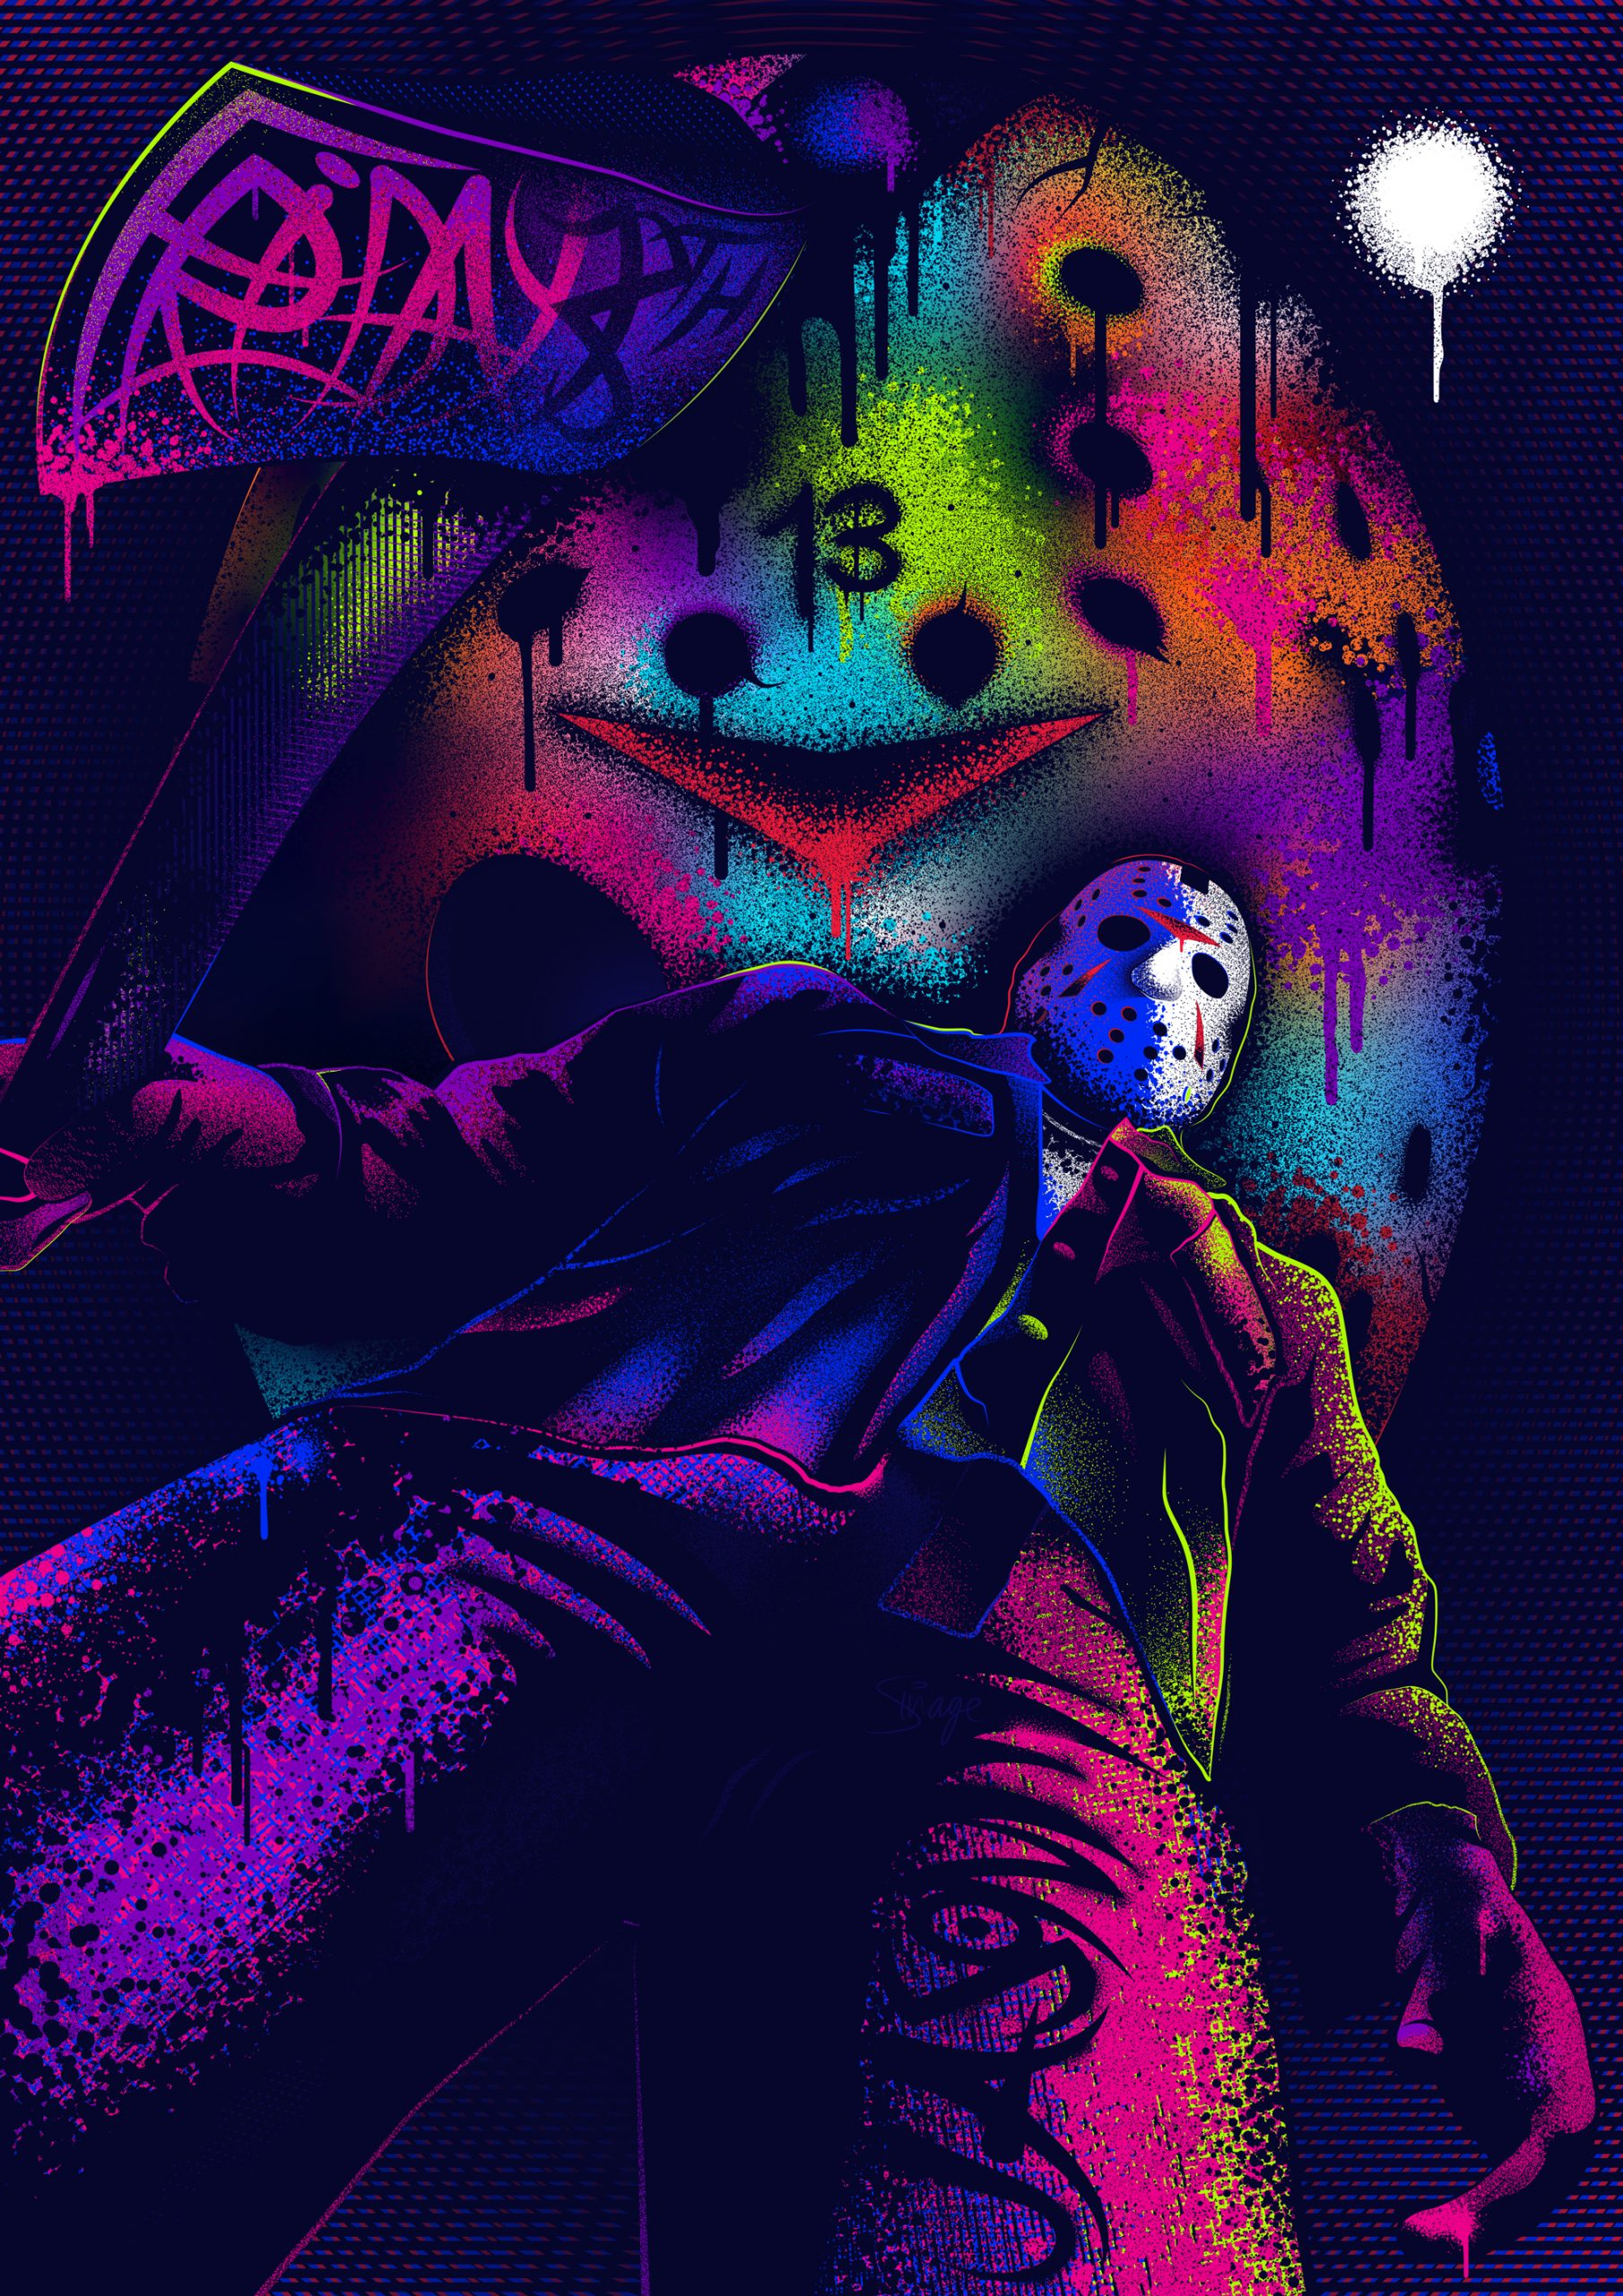 Friday The 13th Neon Poster